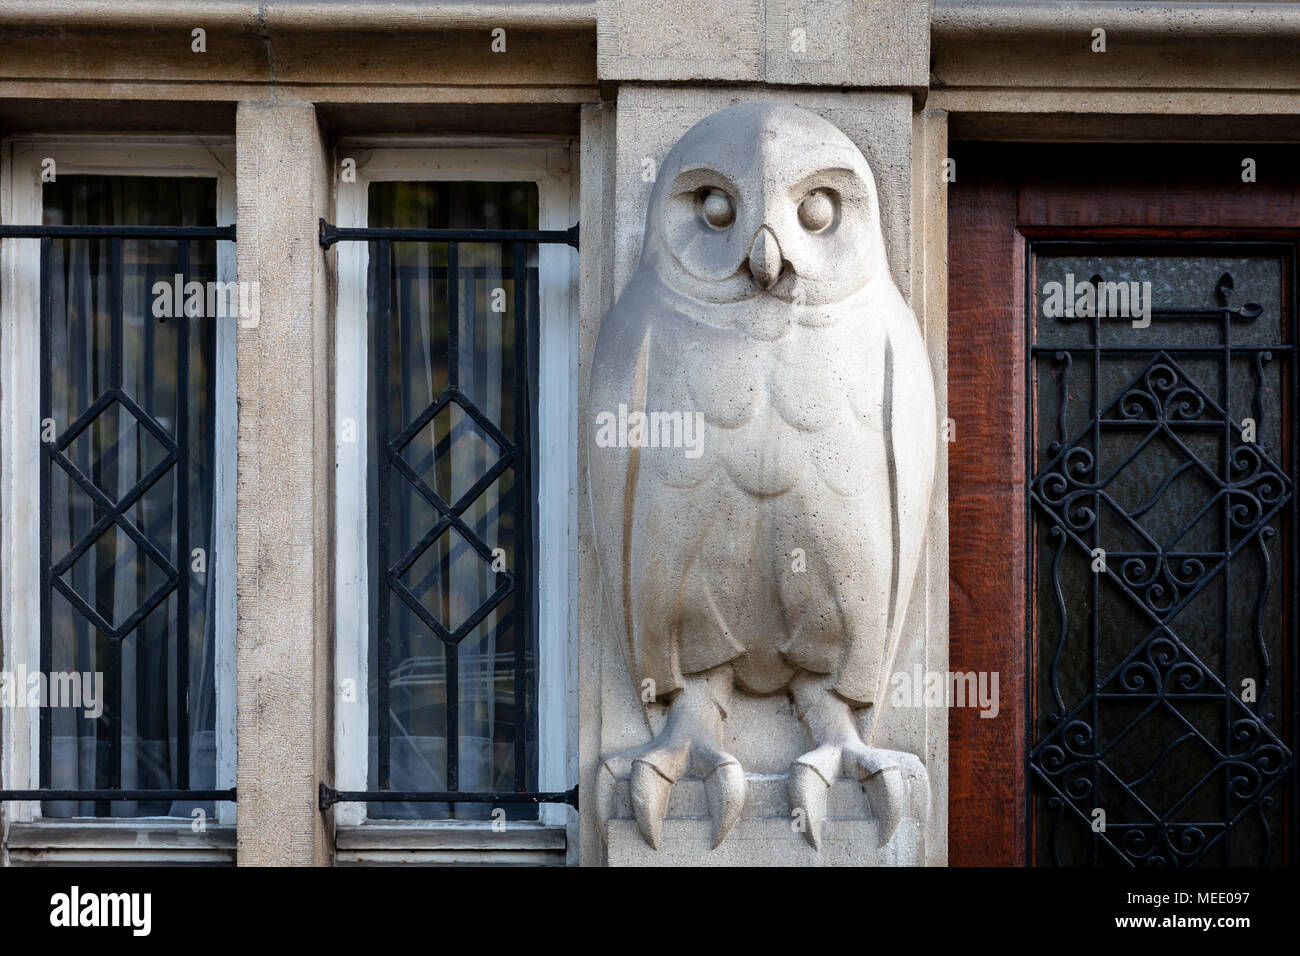 Brussels/Belgium - April 21st 2018: An owl sculpture on an entrance of a building in Brussels, Belgium - Stock Image